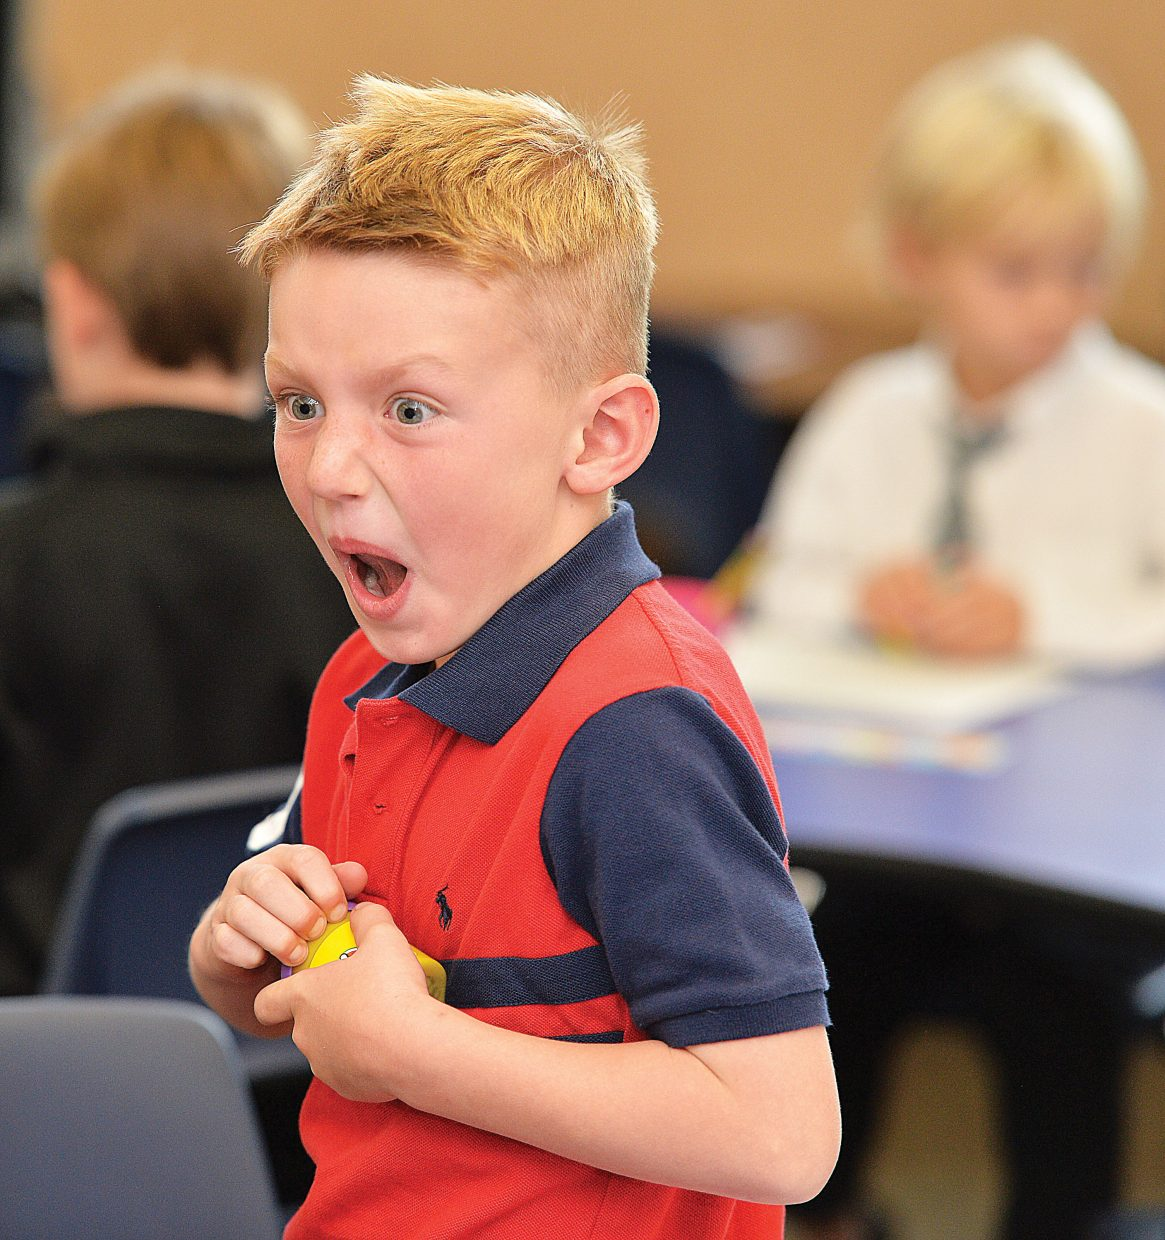 Kindergartner Sean Struble reacts while attempting to open a can of Play-Doh on the first day of class at Soda Creek Elementary School. Most of the school district began classes Tuesday, but kindergartners didn't start classes until Wednesday.